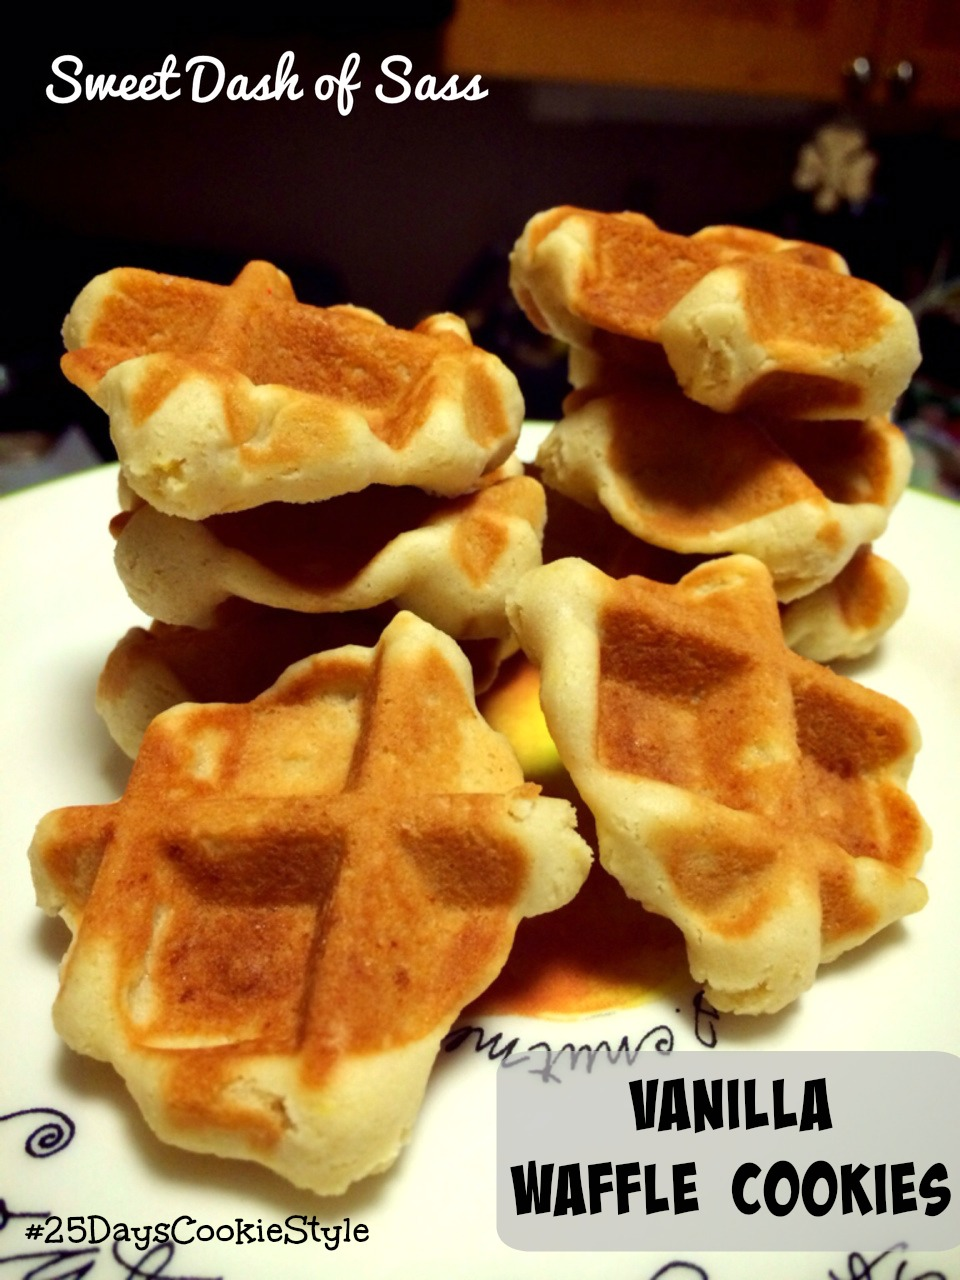 Vanilla Waffle Cookies - No oven required!  Use your waffle iron.  #25DaysCookieStyle www.SweetDashofSass.com